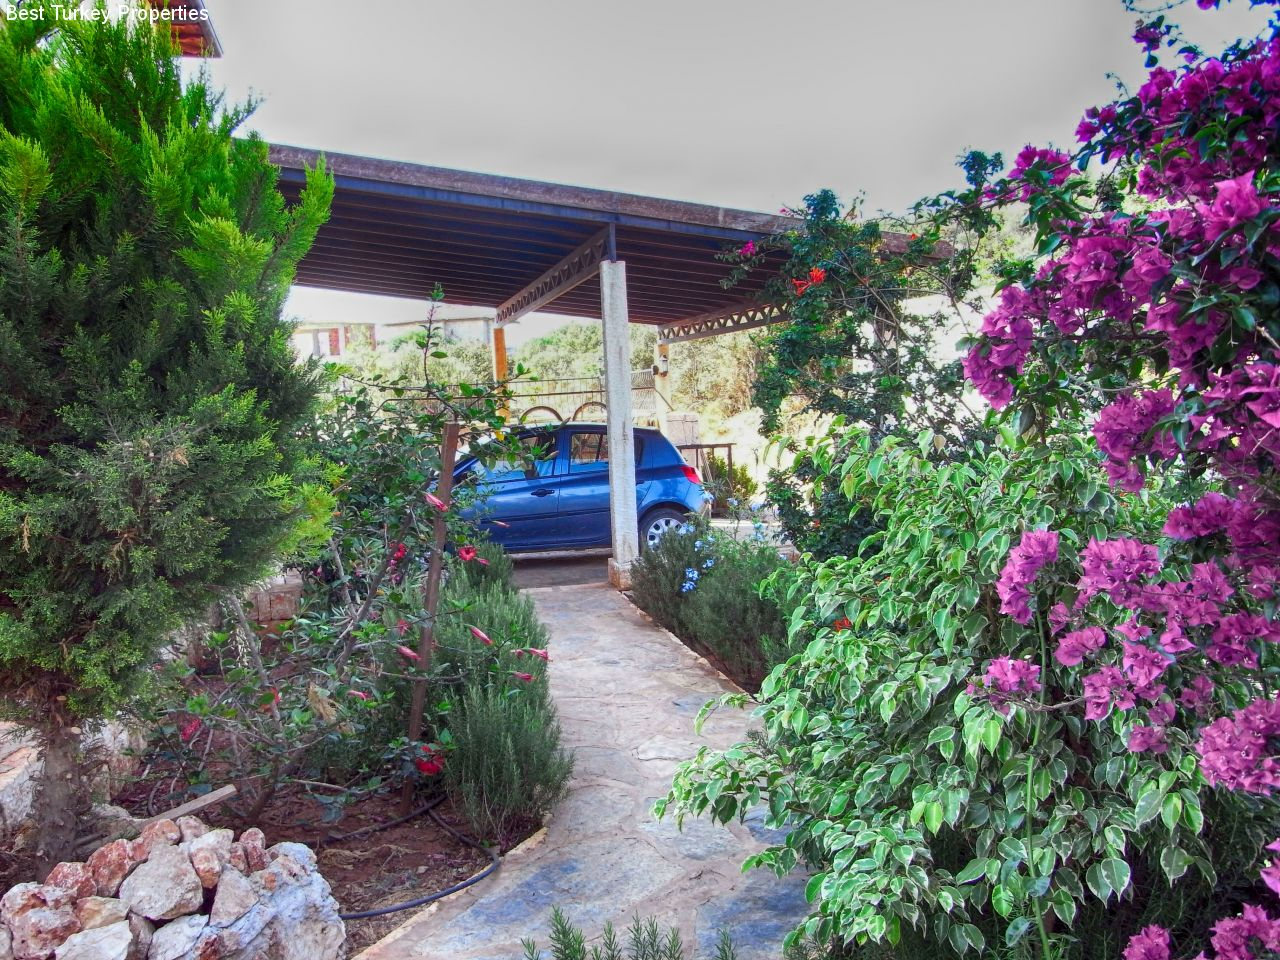 c The Gardens between the Entrance Gate and the -Car Port